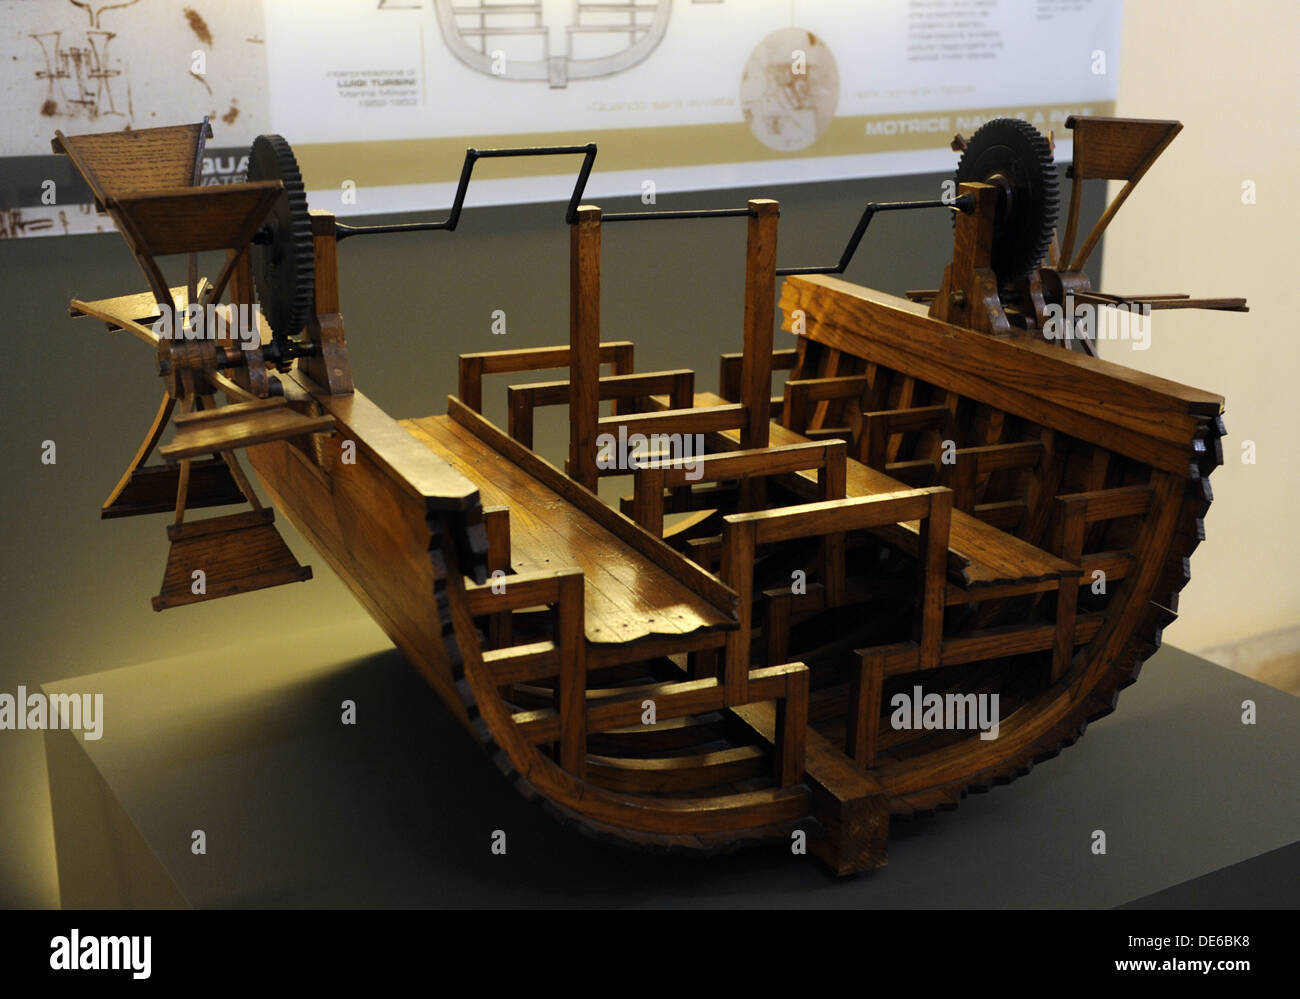 Paddle boat. Study by Leonardo da Vinci for a paddle propulsion boat. Model by Louis Tursini, 1952. - Stock Image